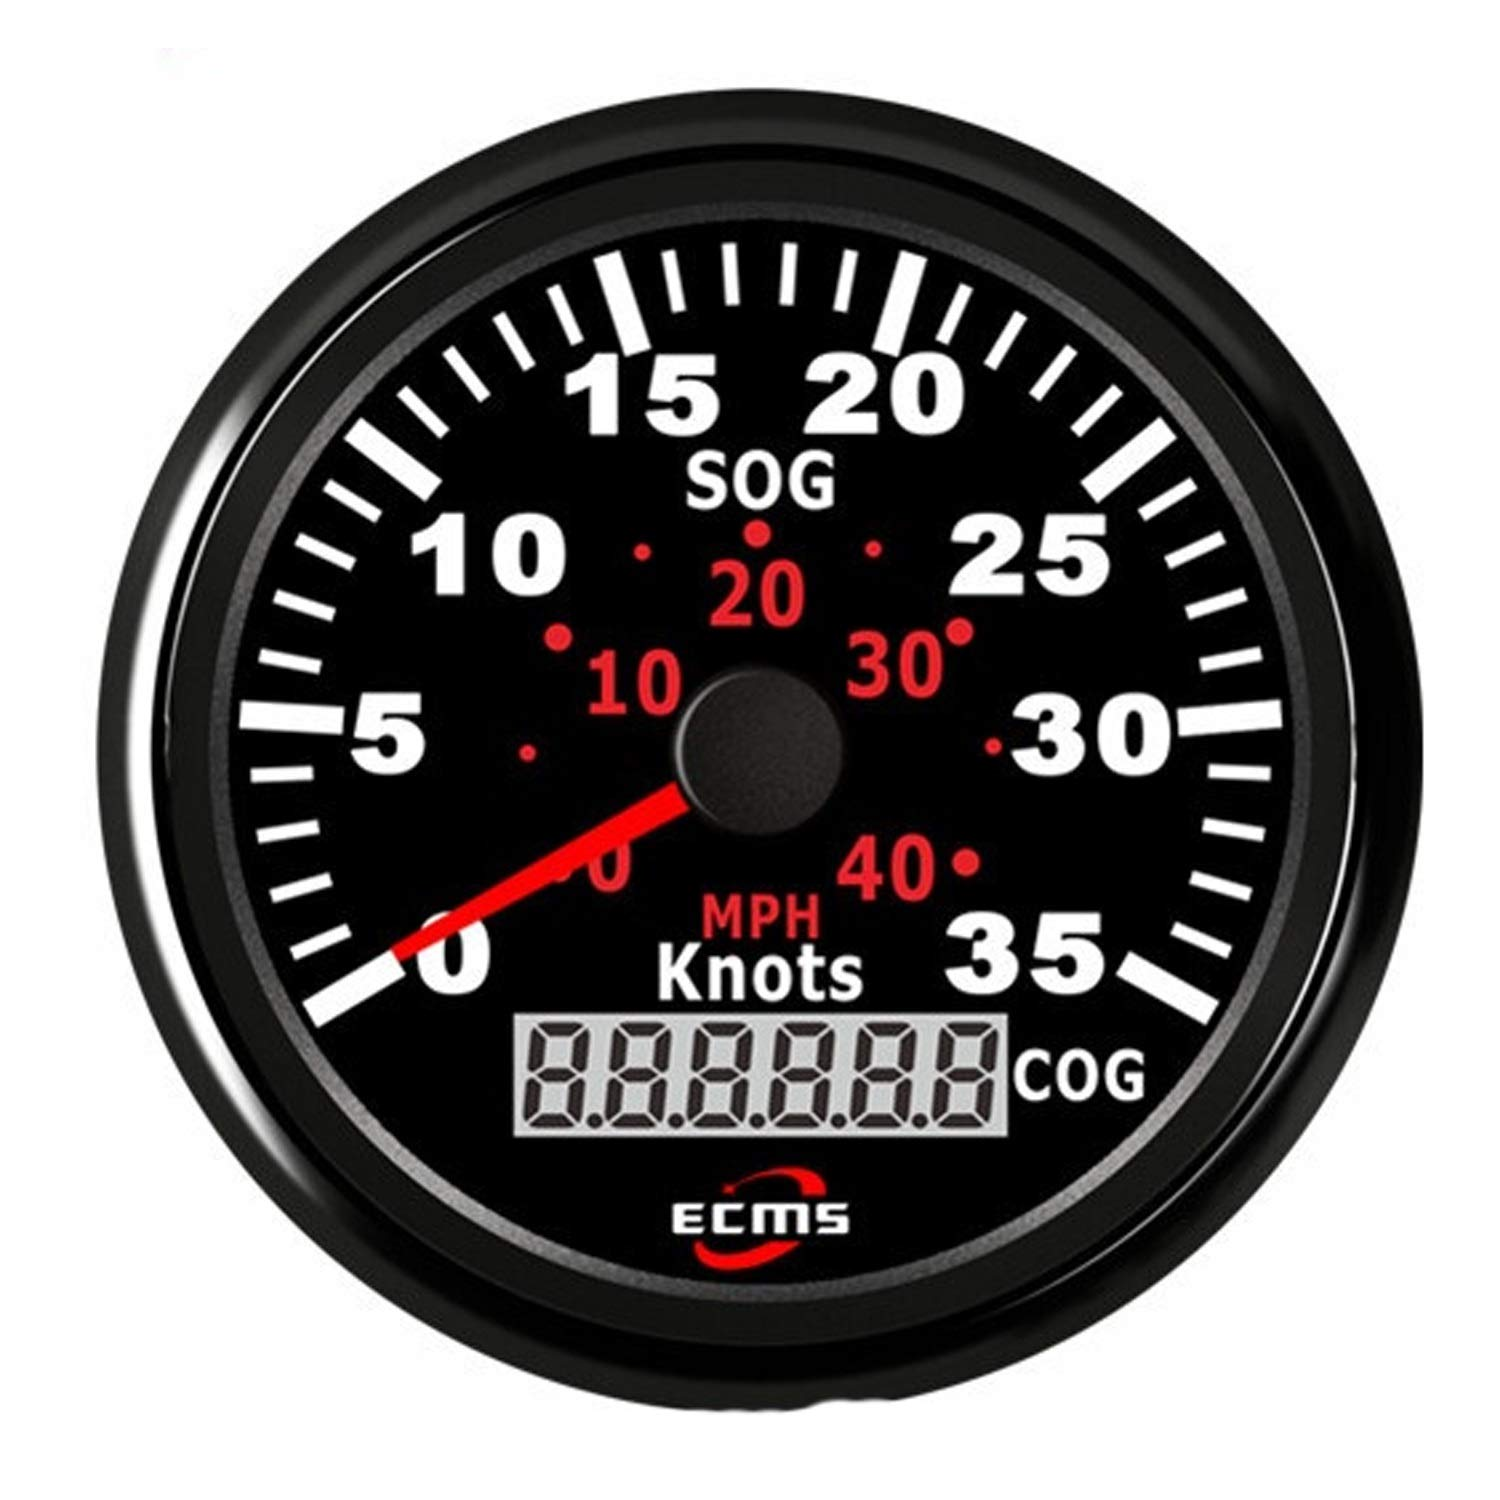 JUNJIAGAO-gauge Low Power Consumption GPS Speedometer Odometer 0-35Knots 0-40MPH for Boat Yacht Vessels with Backlight 3-3/8''(85mm) 12V/24V, Waterproof, Lightning-Proof by JUNJIAGAO-gauge